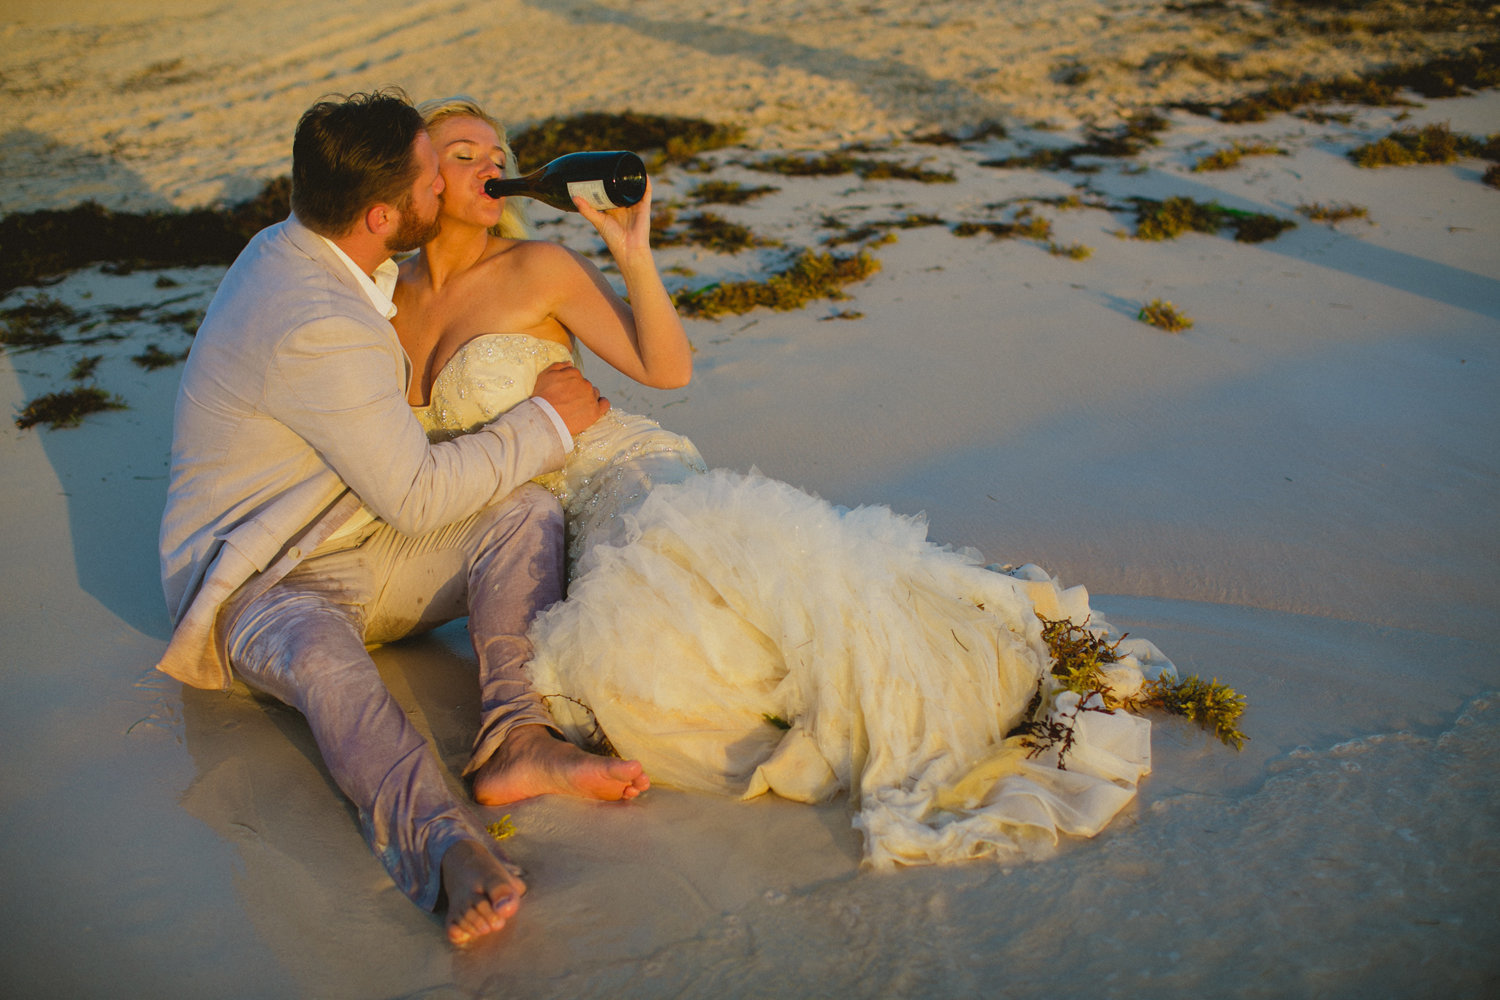 punta_cana_canada_intimate_wedding_dress_photographer_katya_nova_052